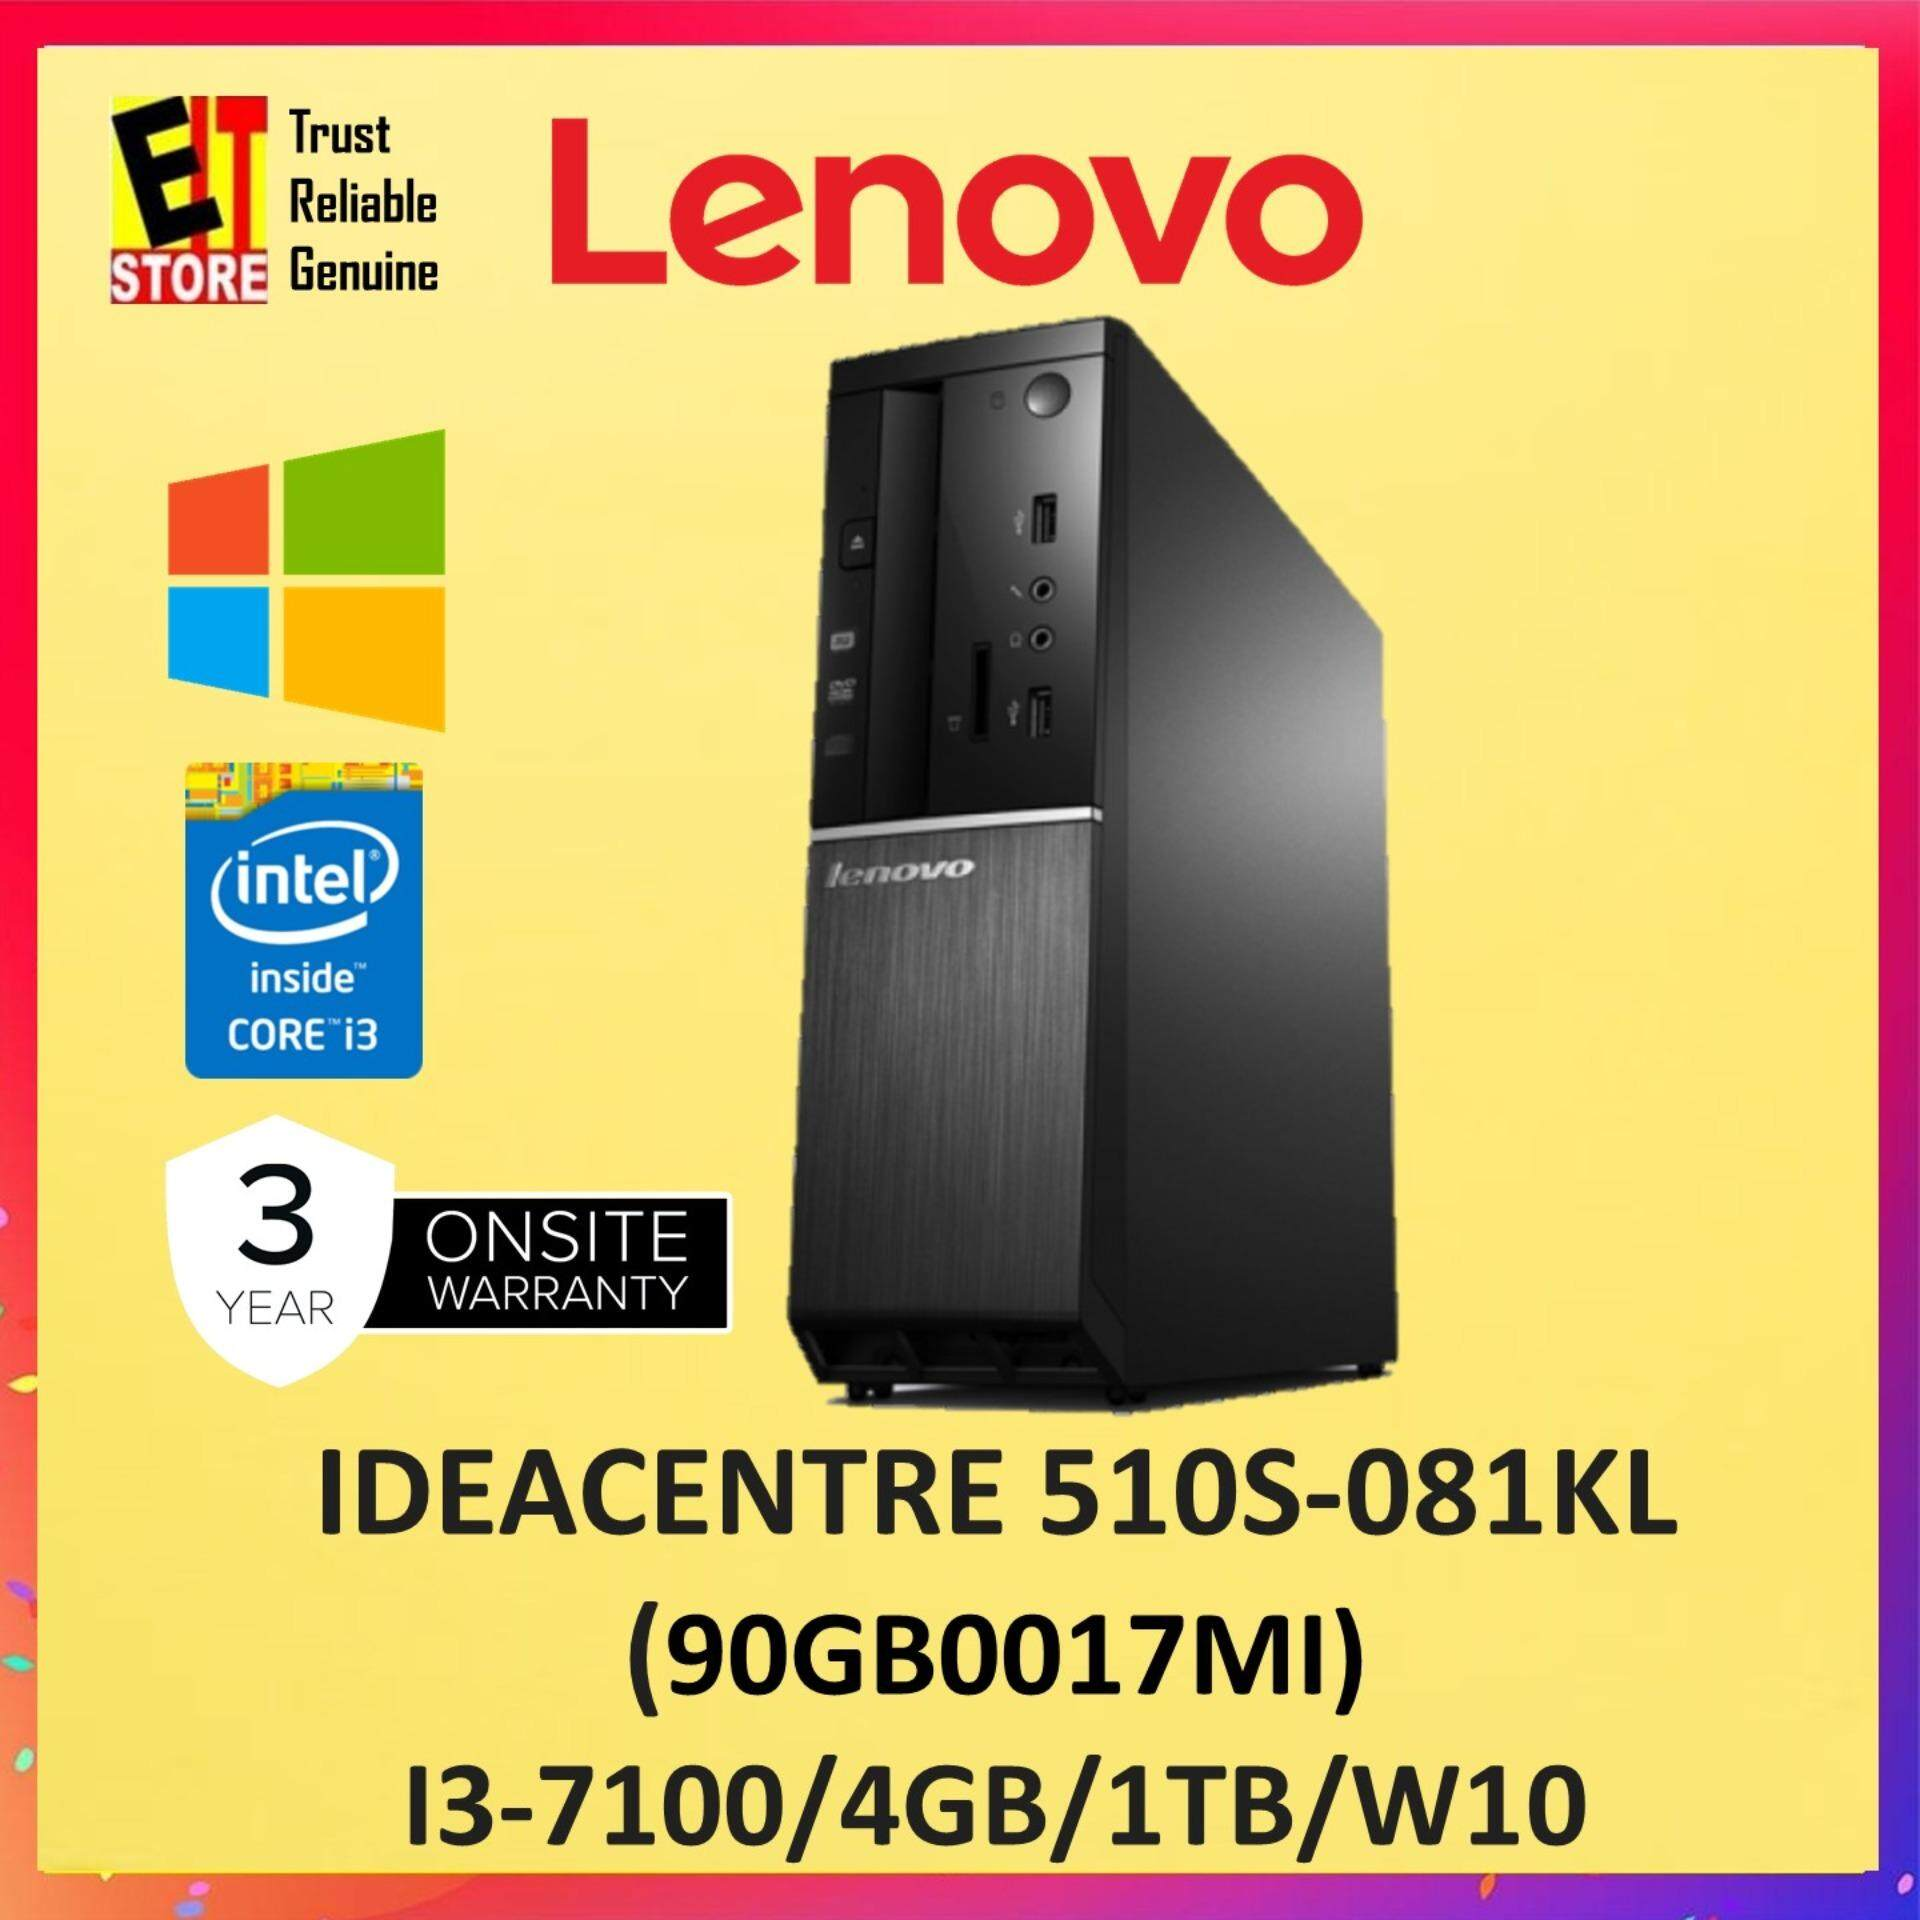 Lenovo Products & Accessories for the Best Price In Malaysia